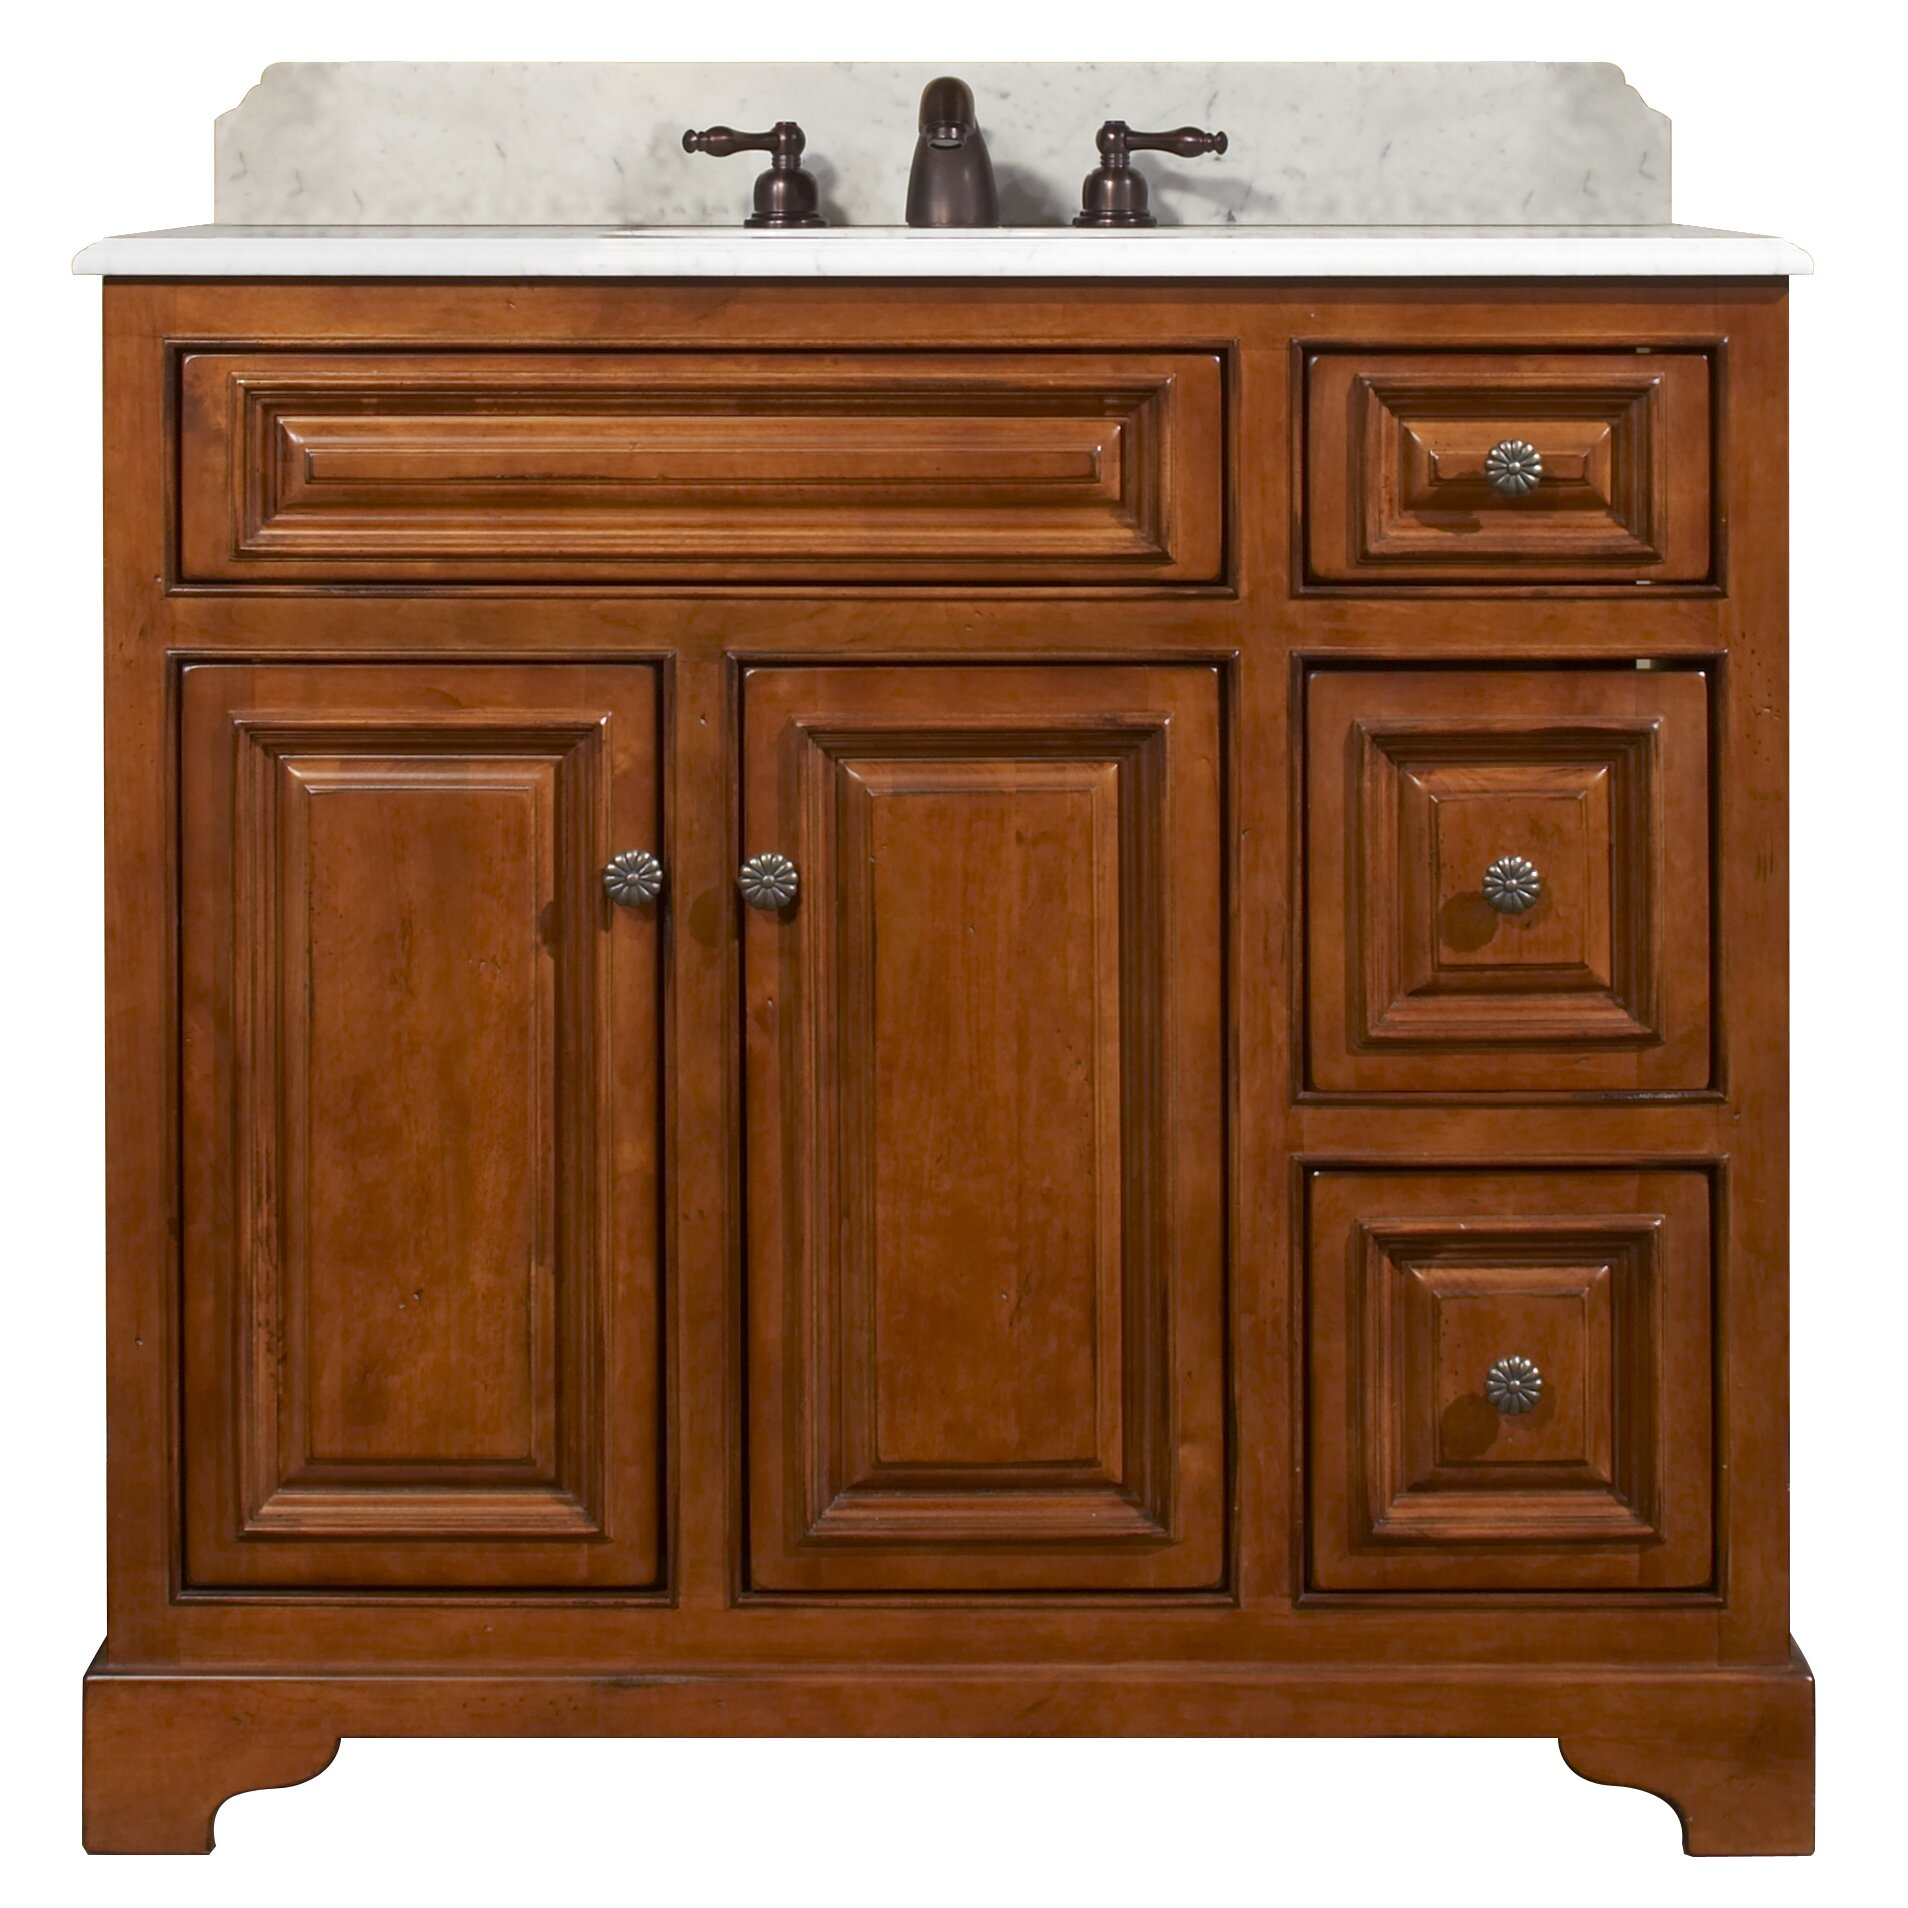 Sunny wood cambrian 37 bathroom vanity base wayfair - Bathroom vanity cabinet base only ...